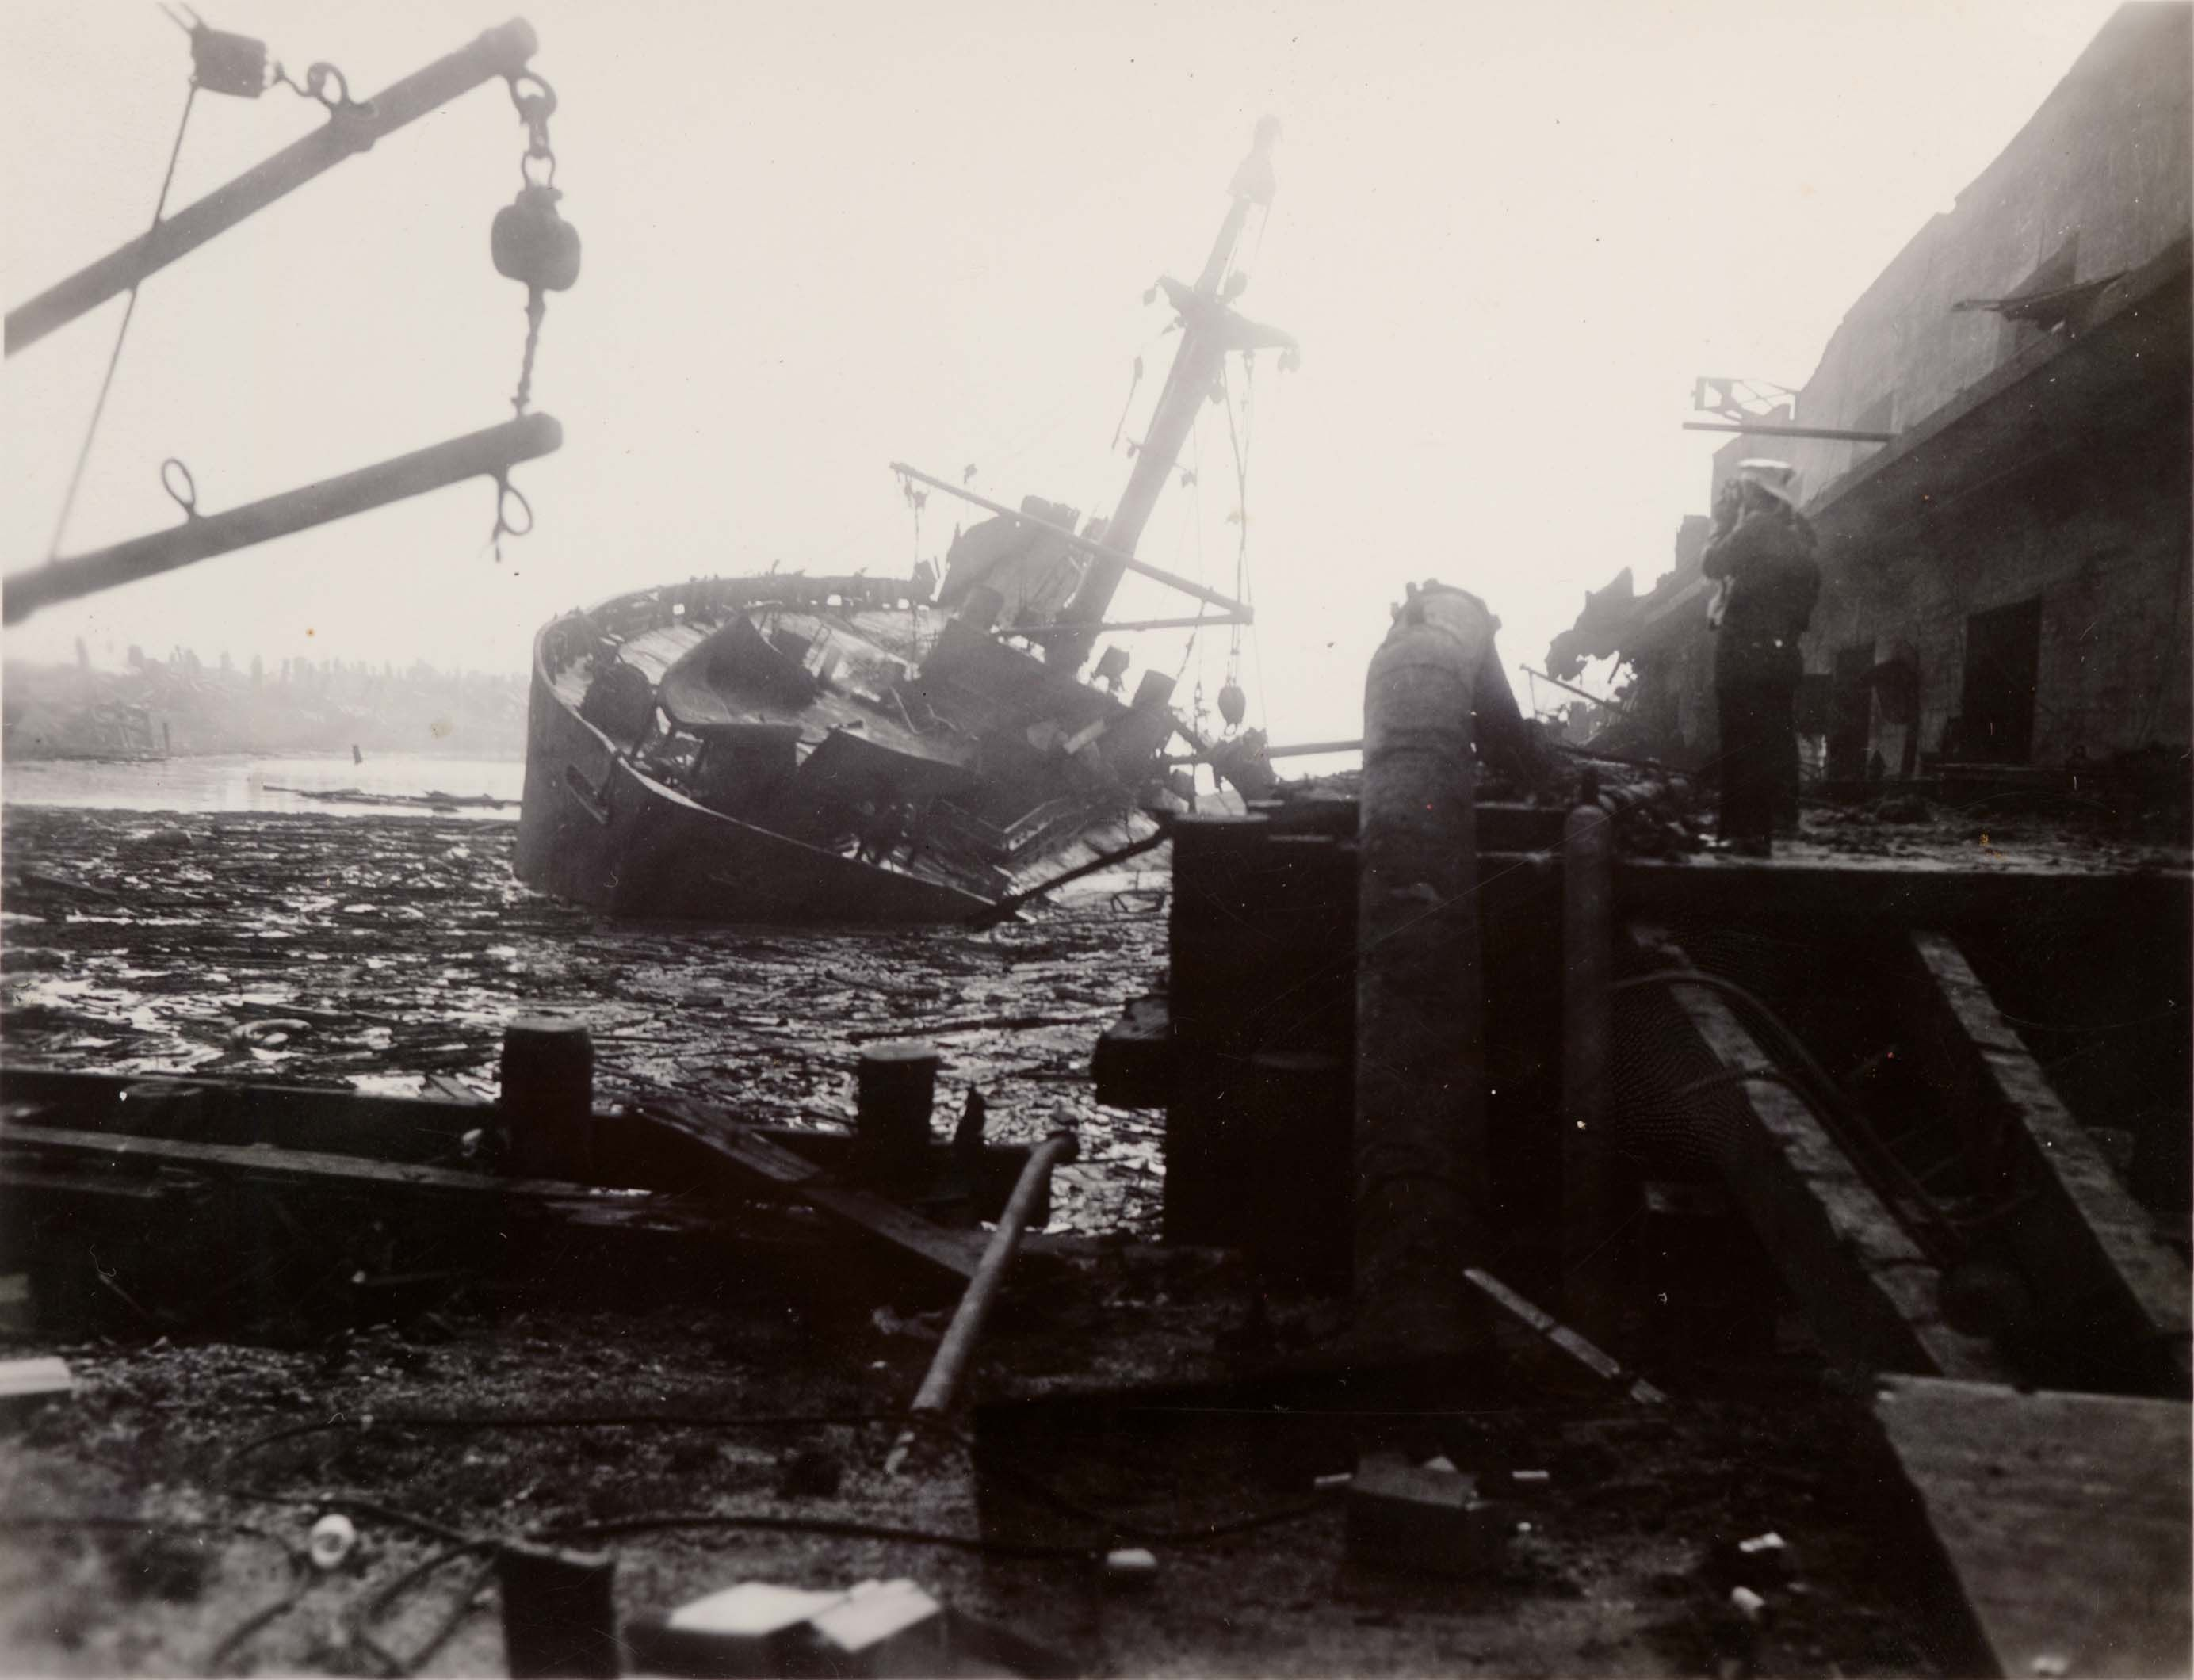 The Texas City disaster was an industrial accident that occurred